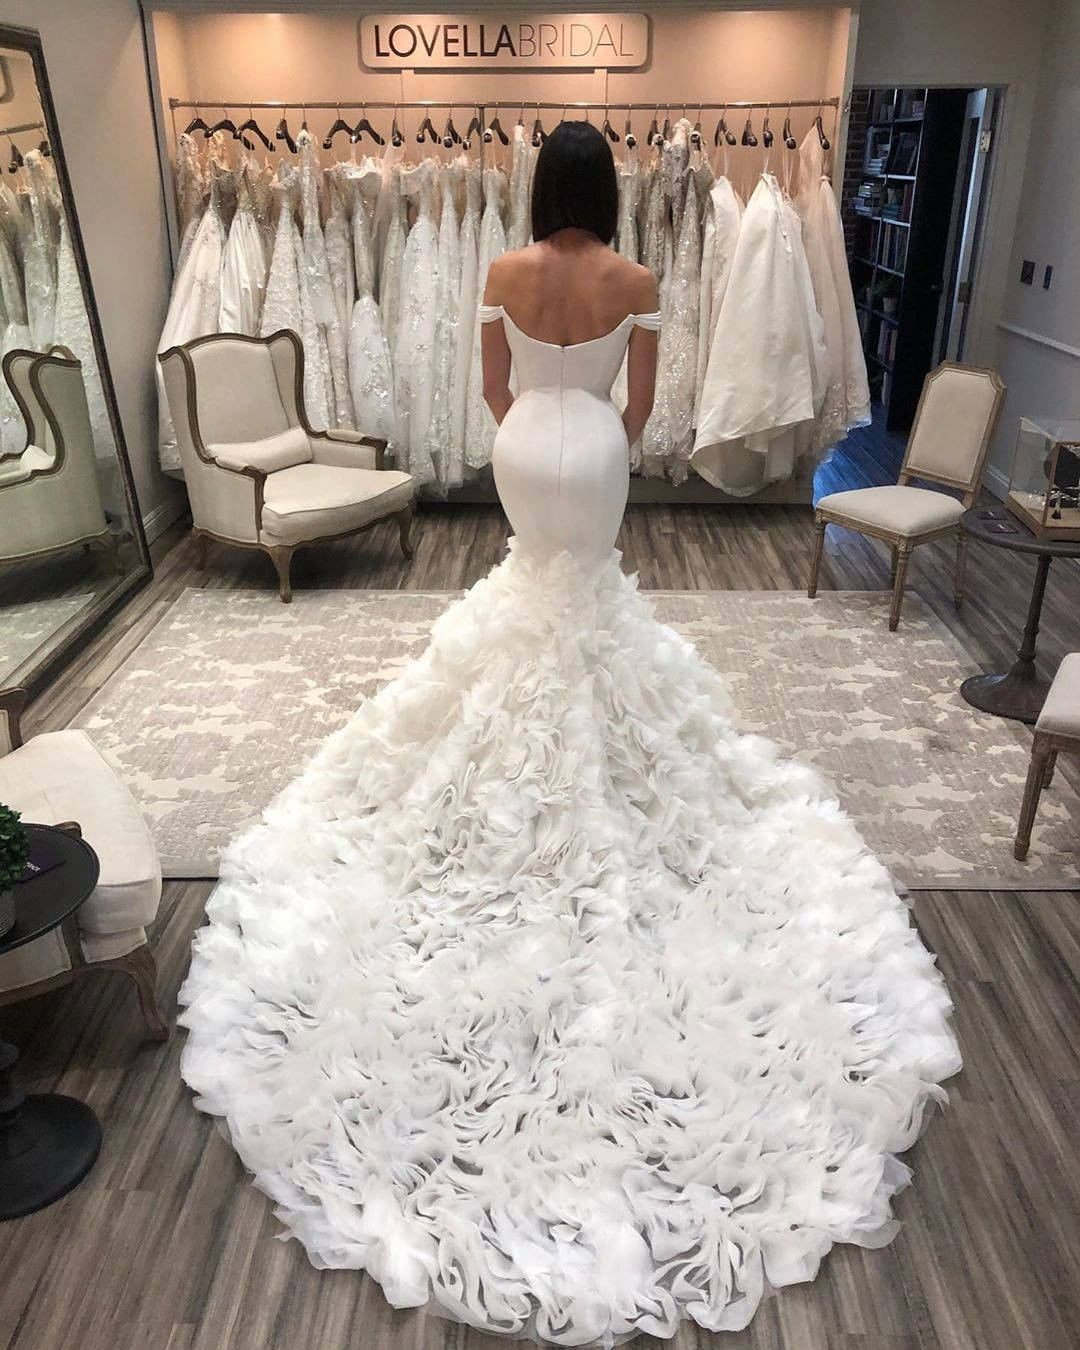 Wedding Dresses Gallery On Instagram We Totally Can T Resist These Open Back Dresses Which One Would You Wear 1 2 3